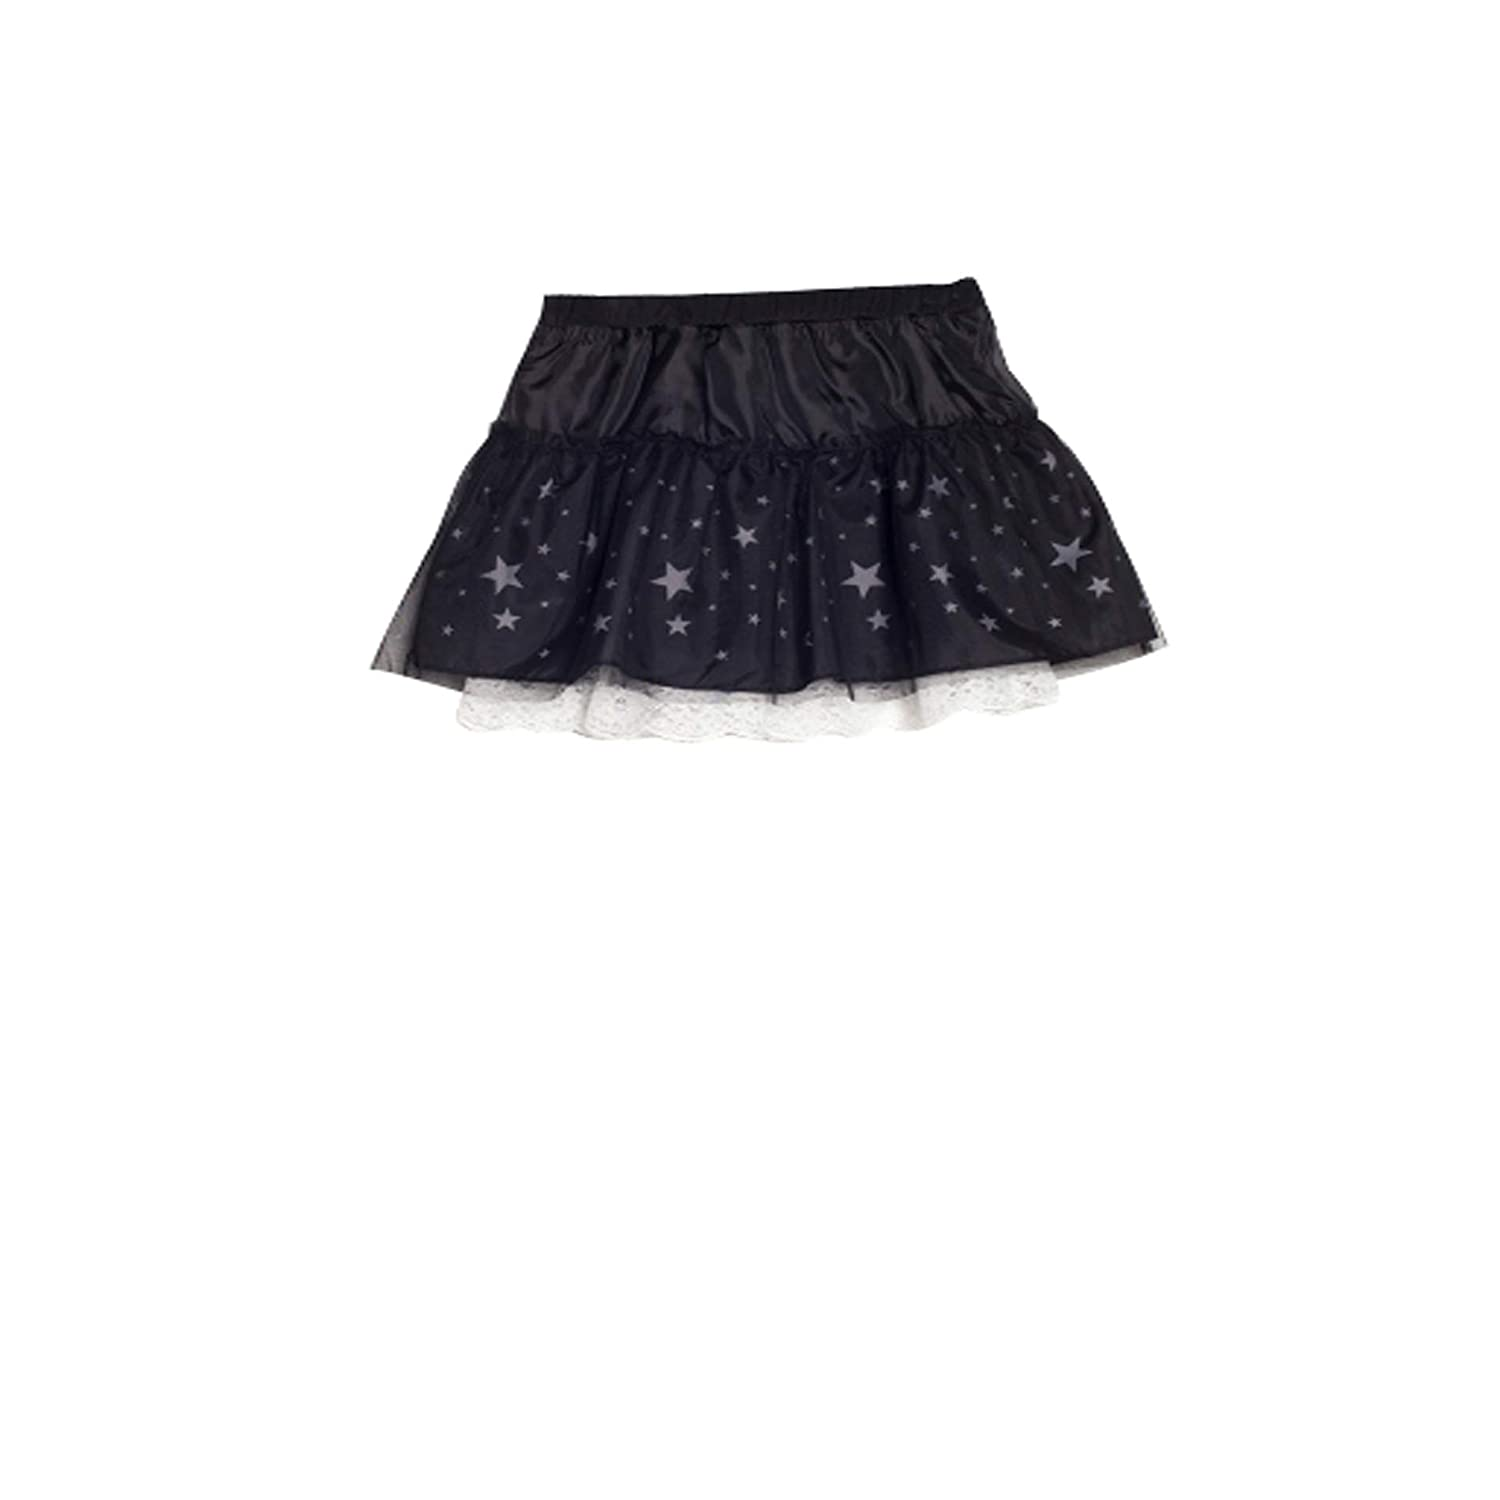 Bossini Kids Child Girls Layered Star Tutu Skirt Princess Halloween Black